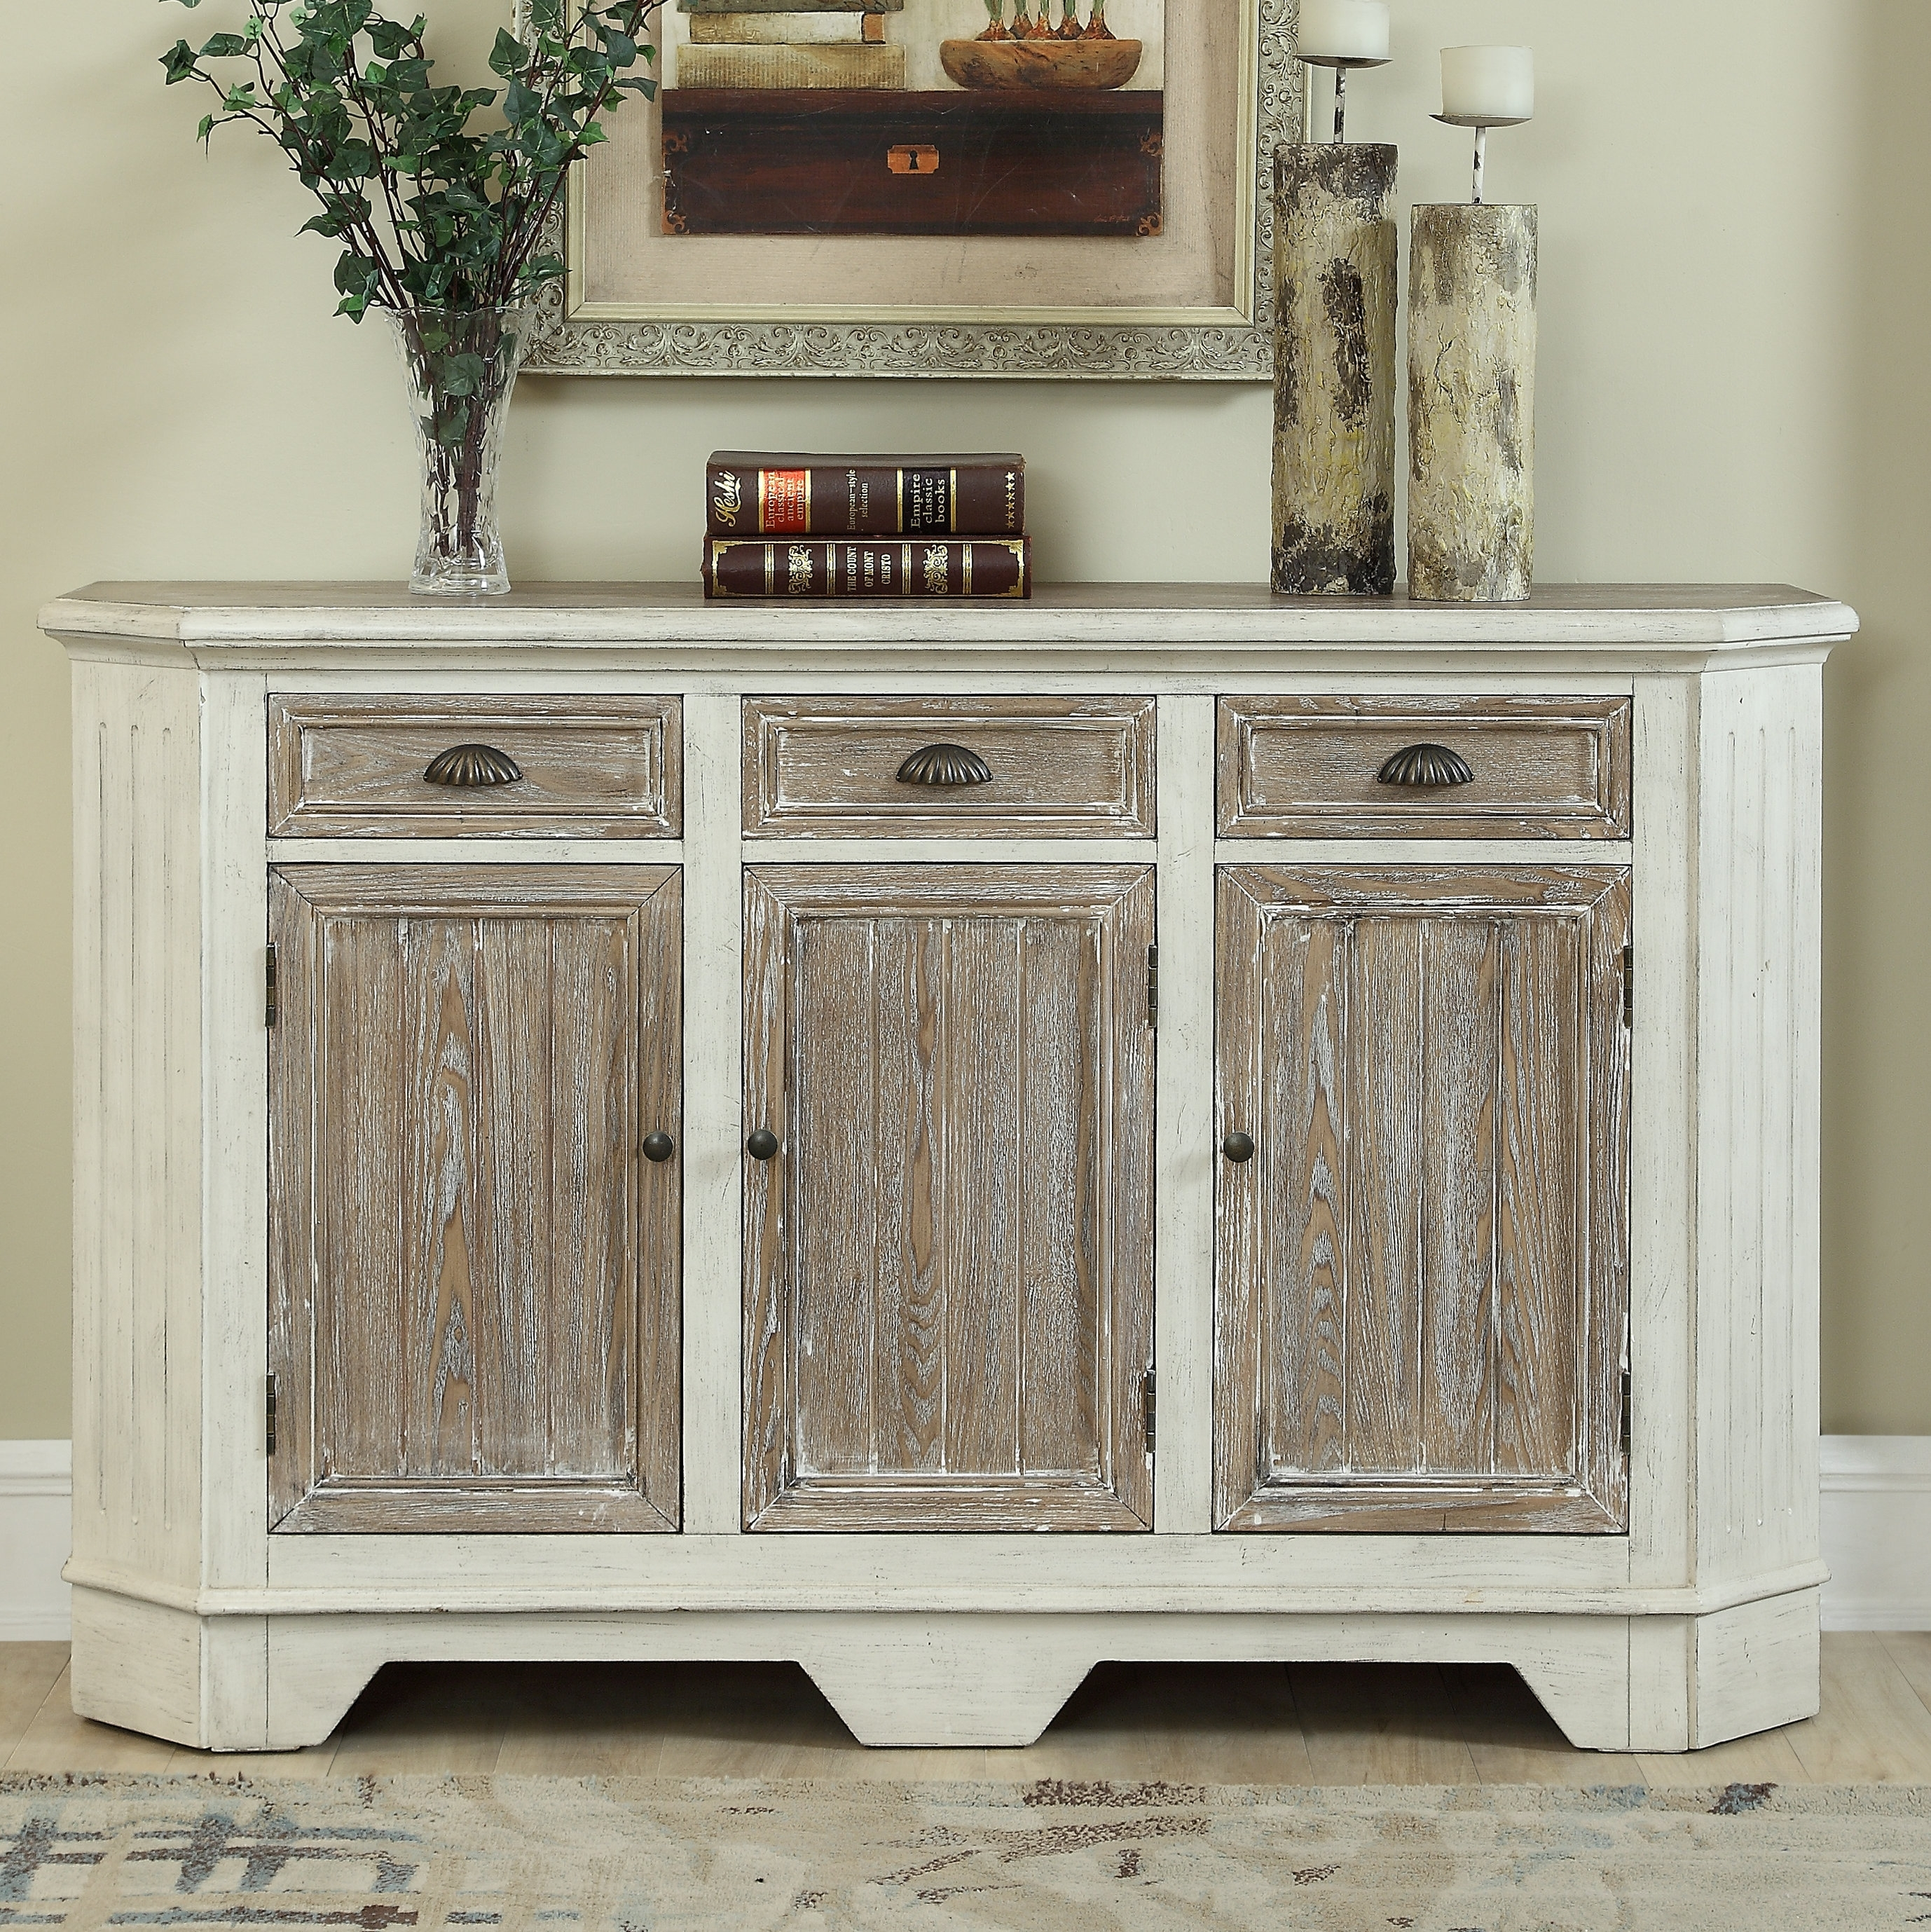 Highland Dunes Funkhouser 3 Door 3 Drawer Sideboard | Wayfair within 3-Door 3-Drawer Metal Inserts Sideboards (Image 11 of 30)